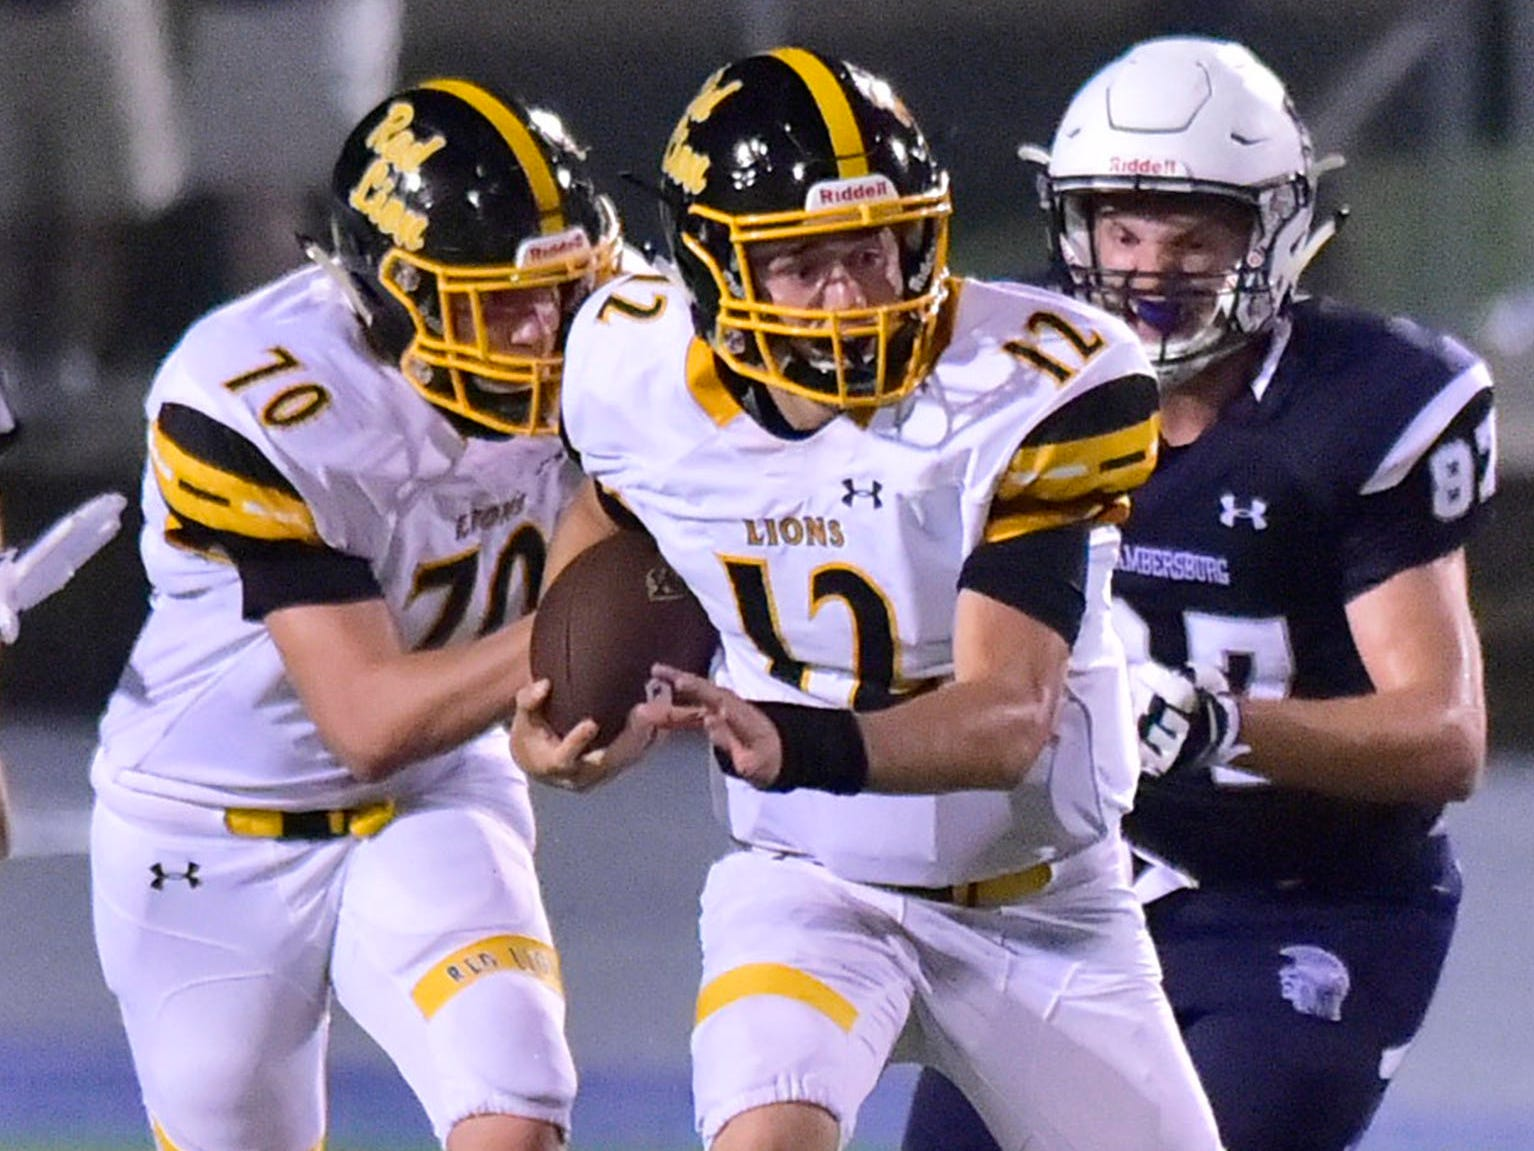 QB Zach Mentzer (12) is on the run for Red Lion as Chambersburg's Bryce Diller (87) pursues. Chambersburg defeated Red Lion 28-19 in PIAA football on Friday, Sept. 7, 2018.